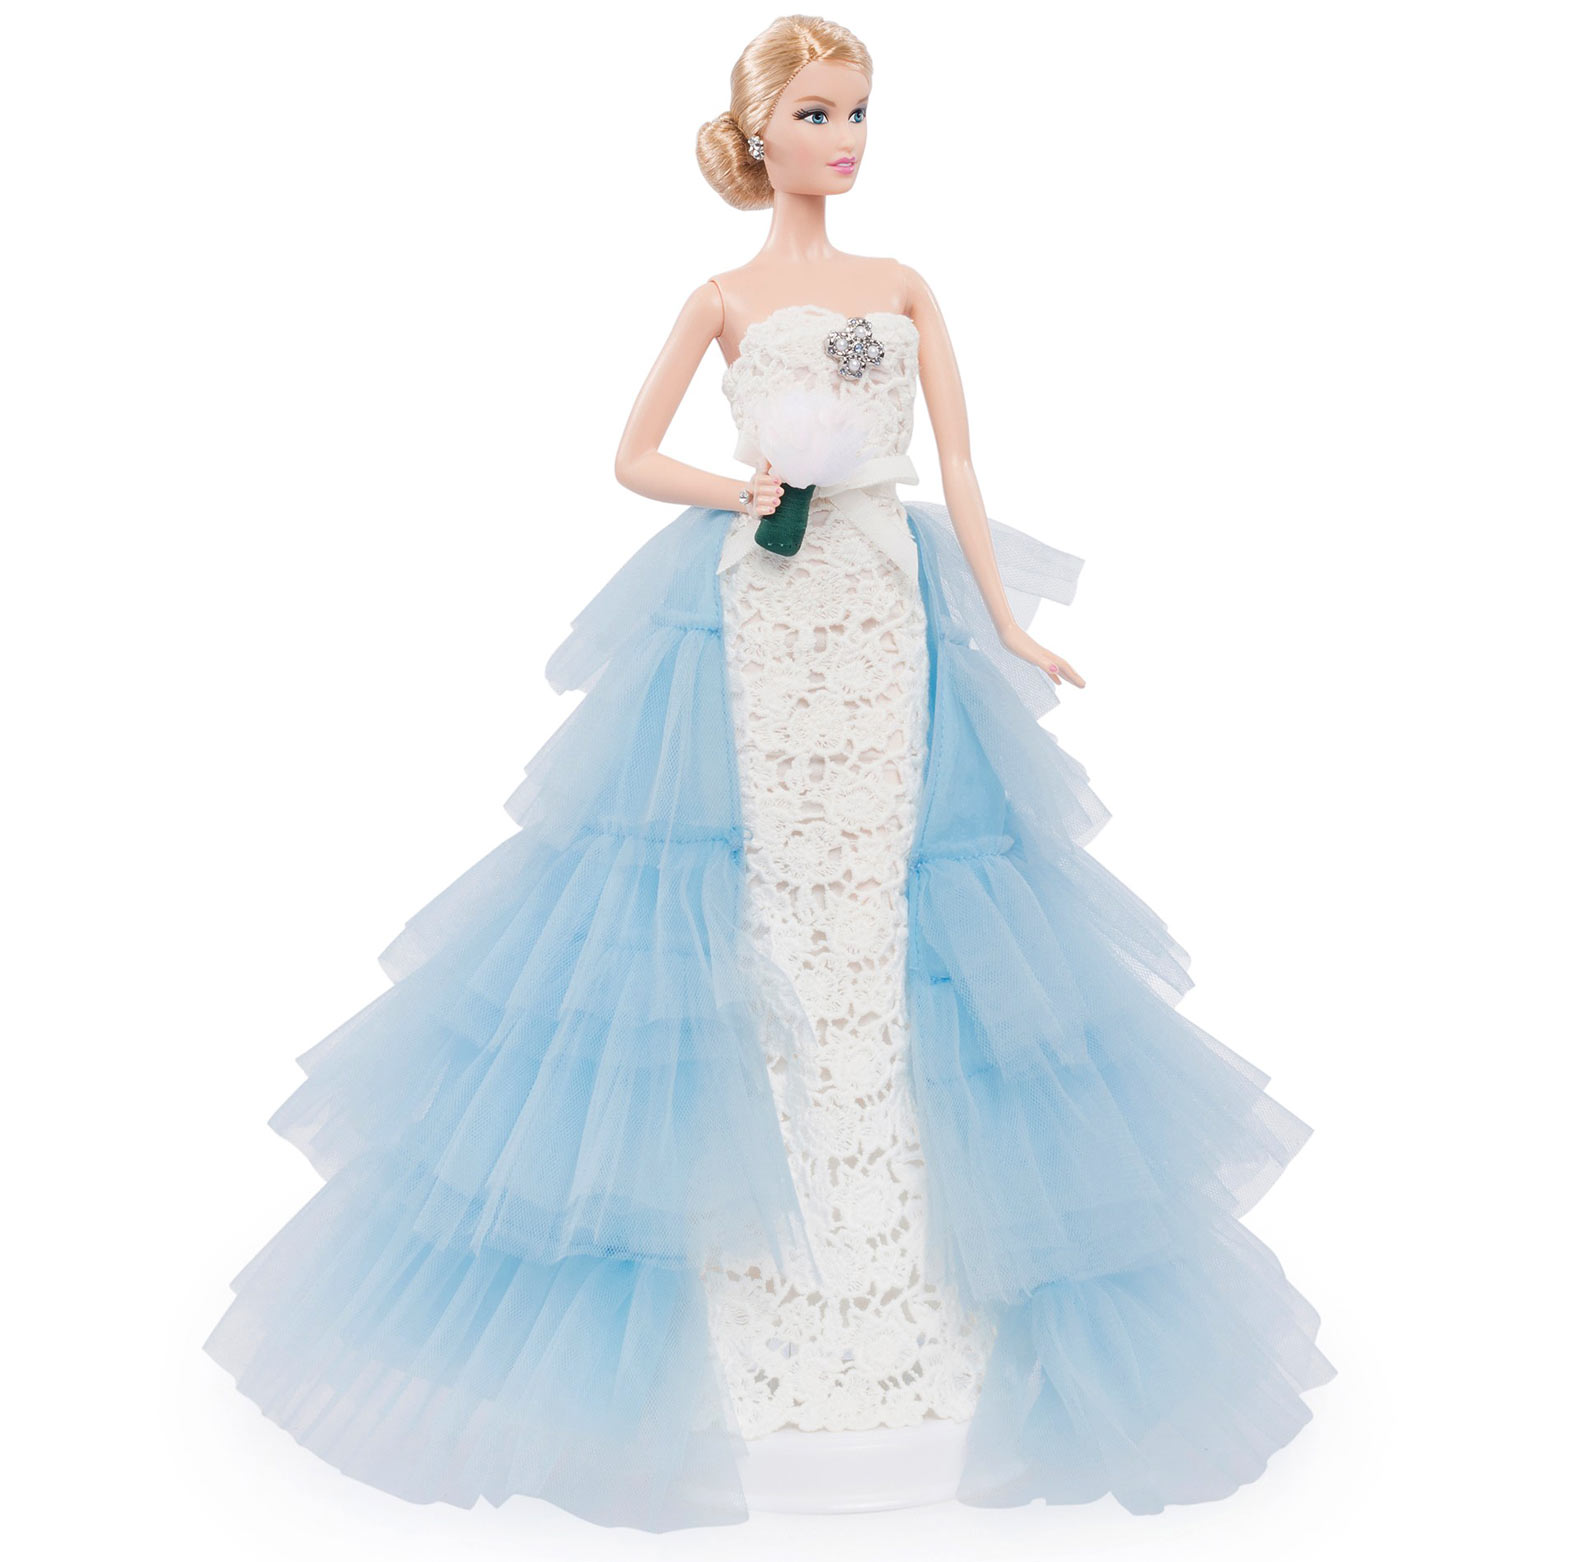 2016-latest-oscar-de-la-renta-bridal-barbie-gown-designer-fashion-dress-wedding-blue-lace-tulle-beautiful